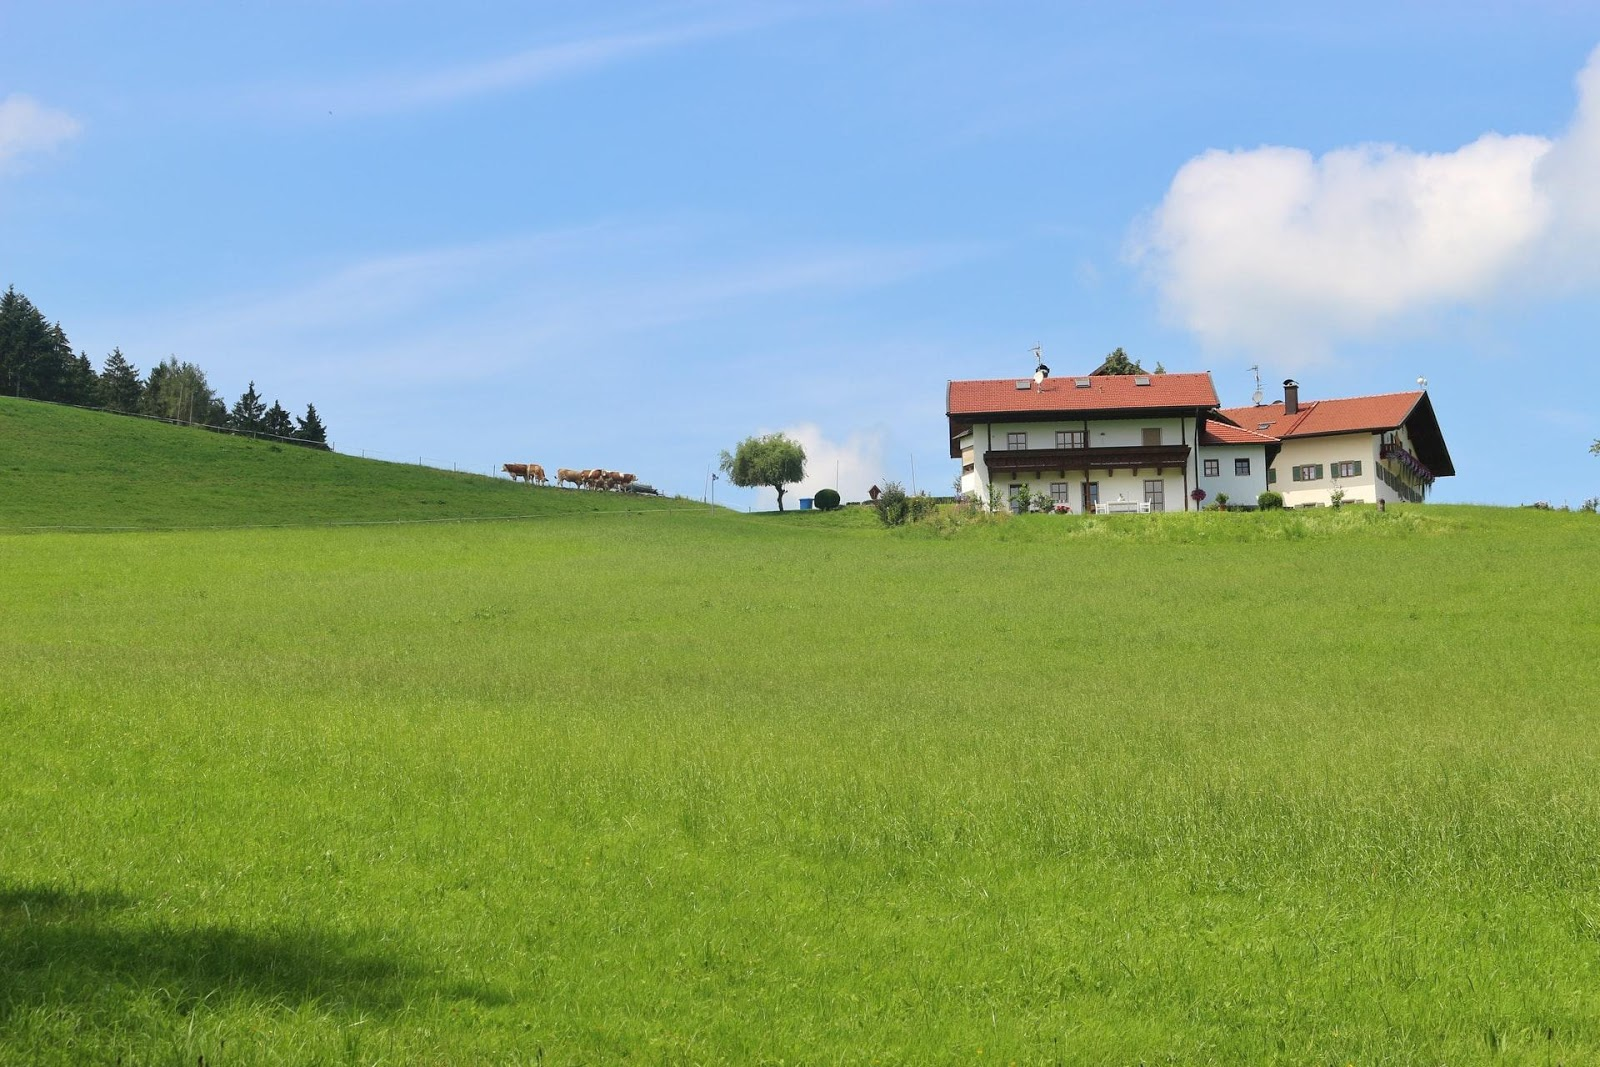 small houses on a field of grass